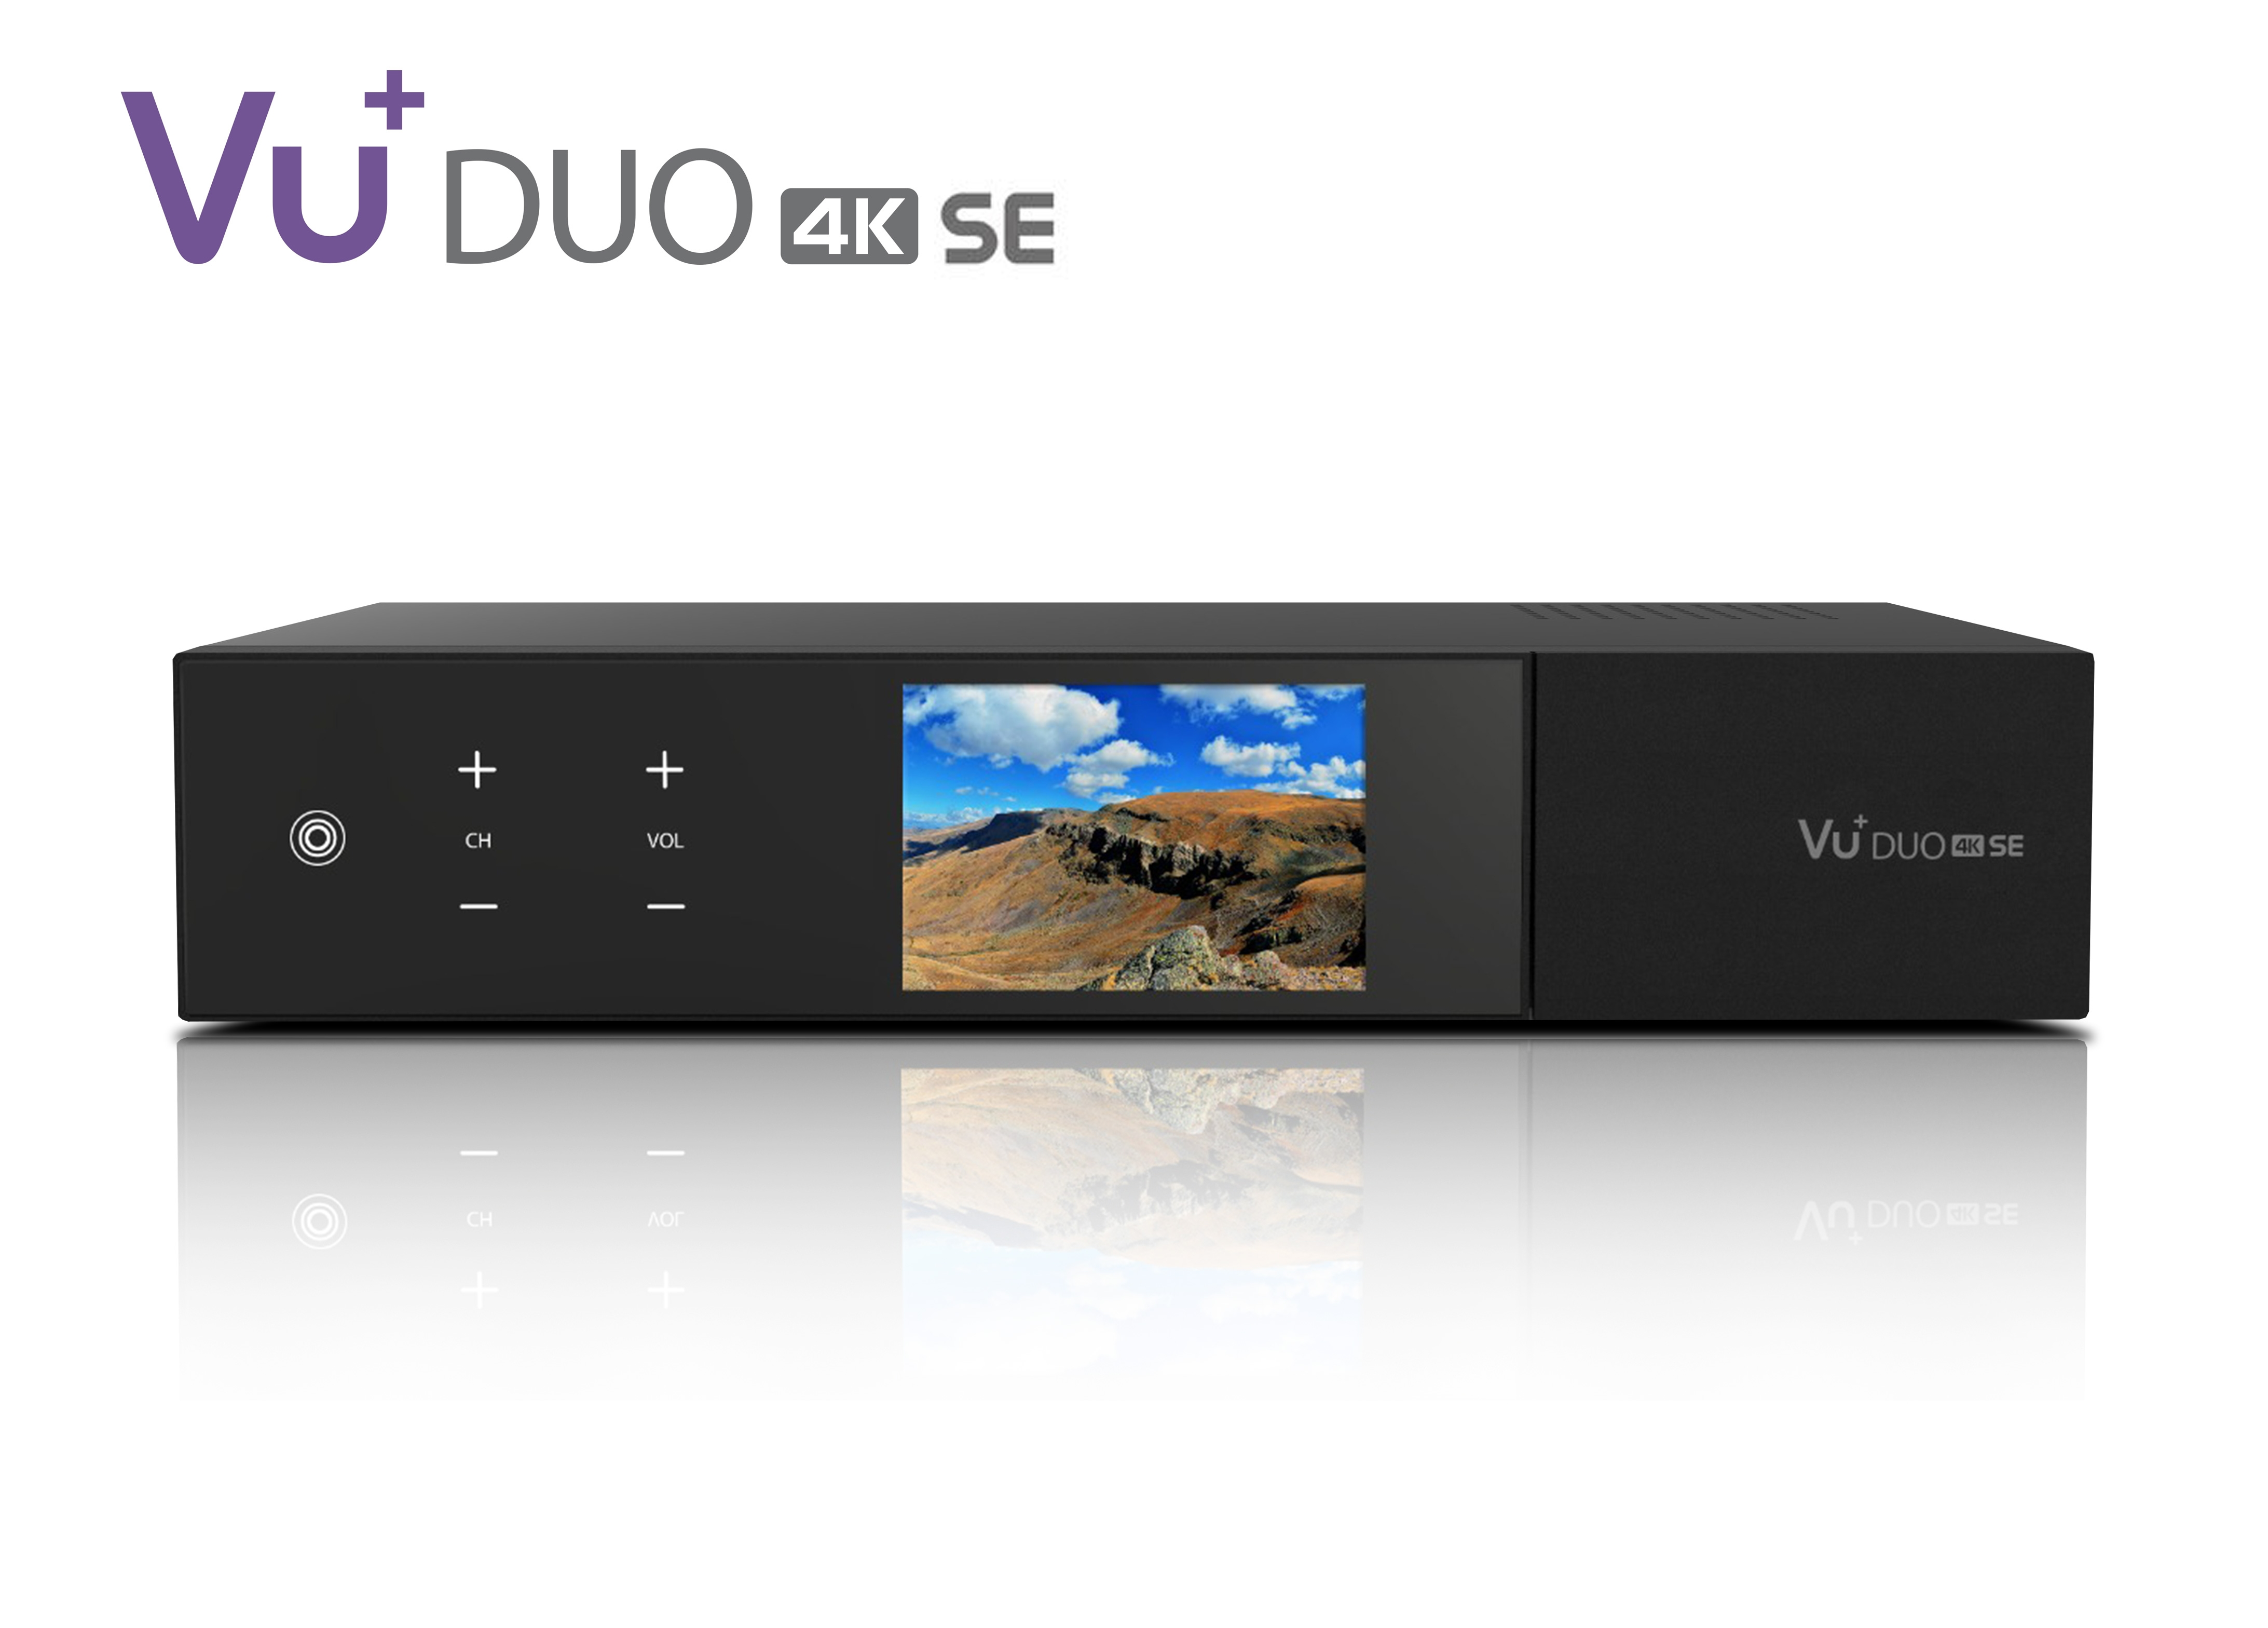 VU+ Duo4K 1xDVB-S2X FBCTwinTuner 1xDVB-T2 DualTuner PVRready Linux UHD